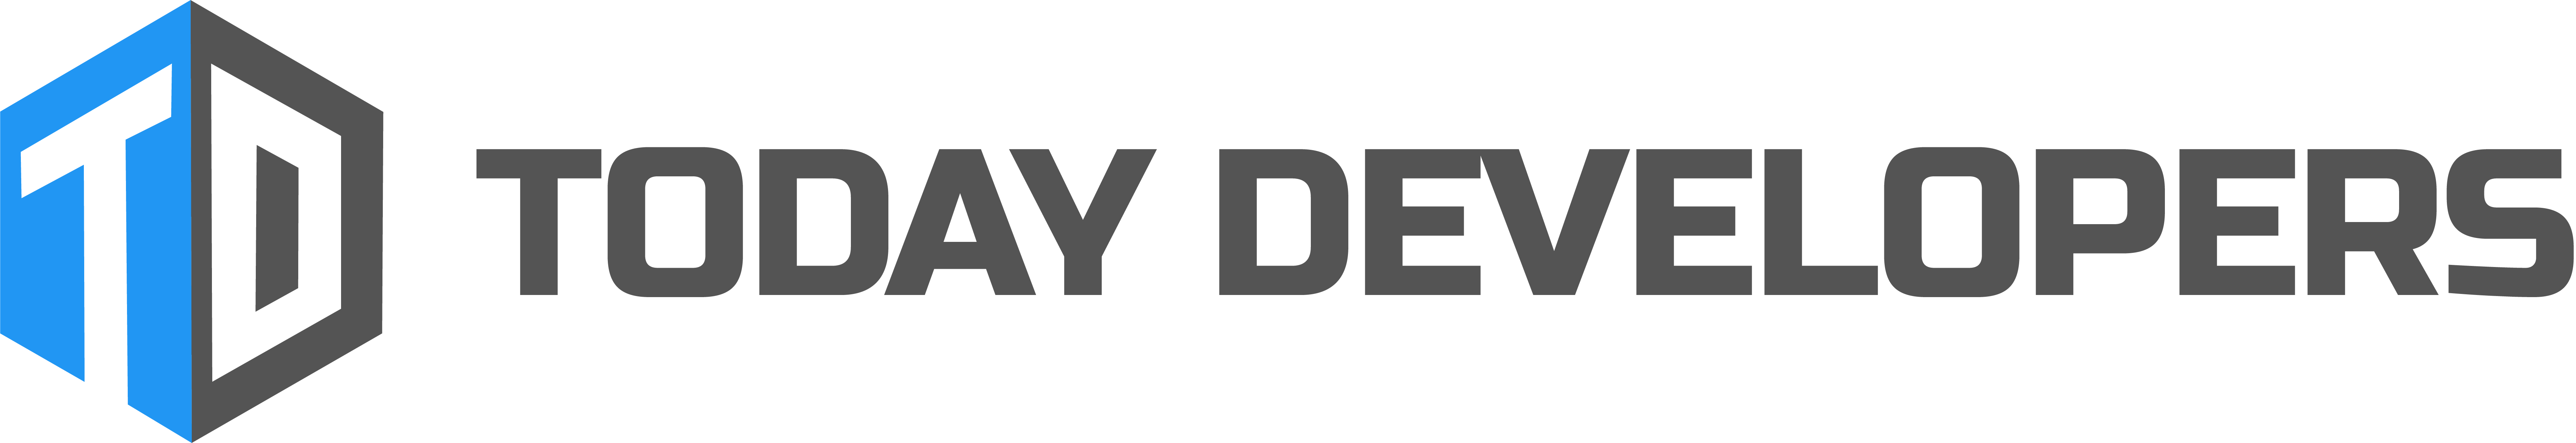 Today Developers